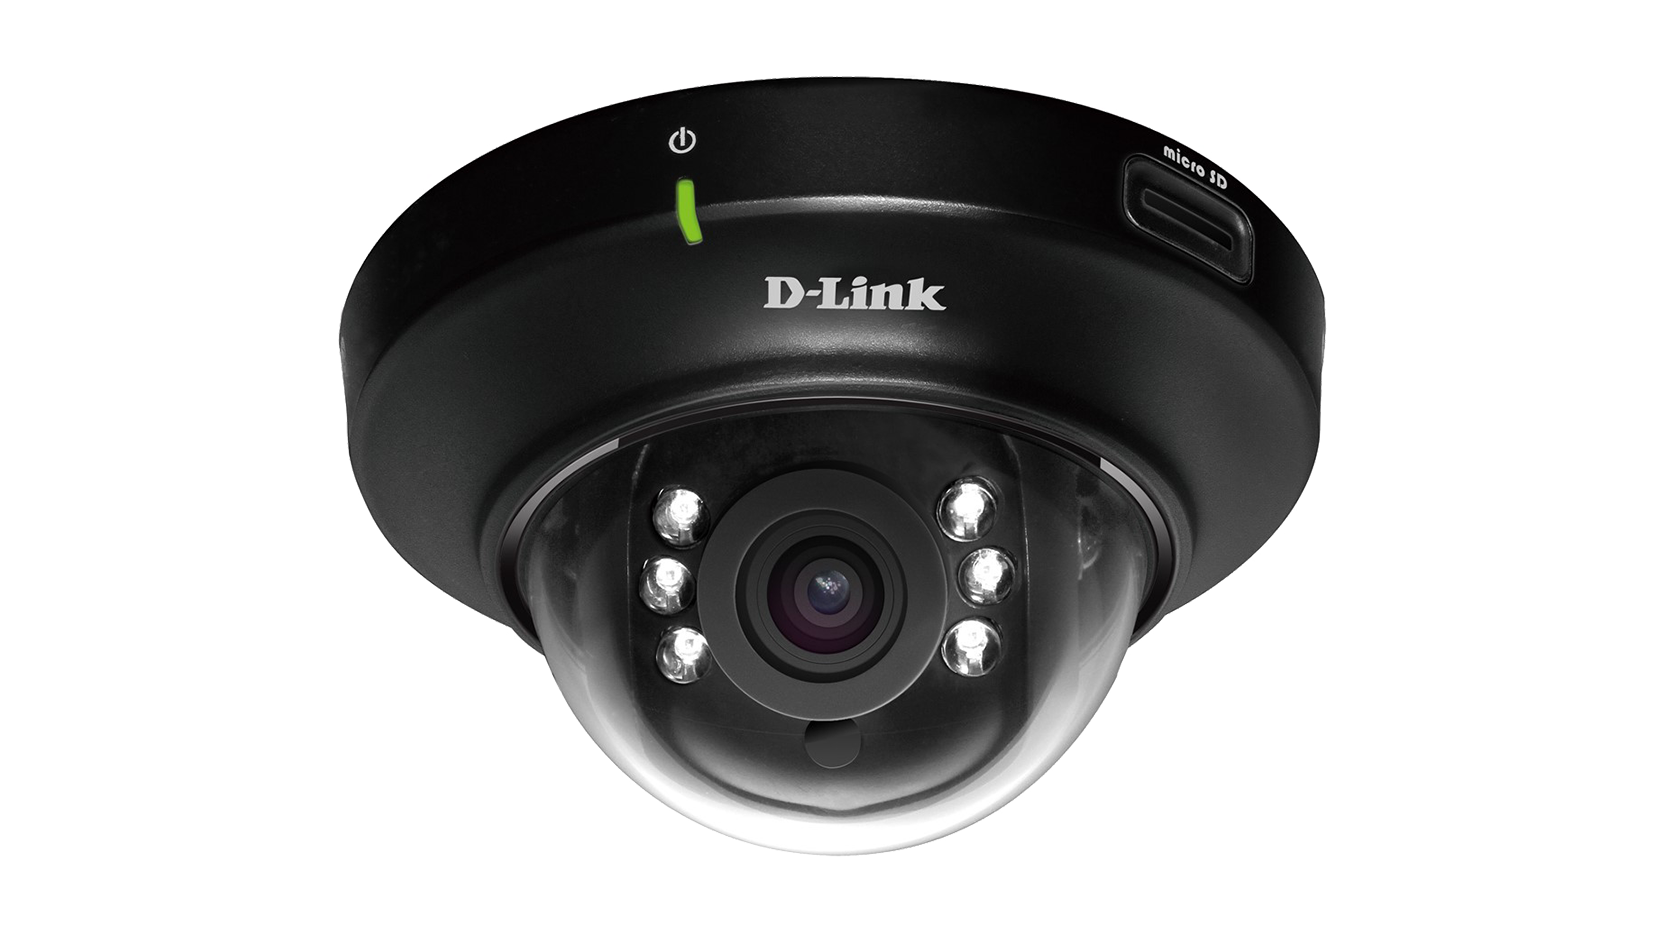 D-Link DCS-6004L 1MP HD POE DAY/NIGHT MINI INDOOR IP CAM